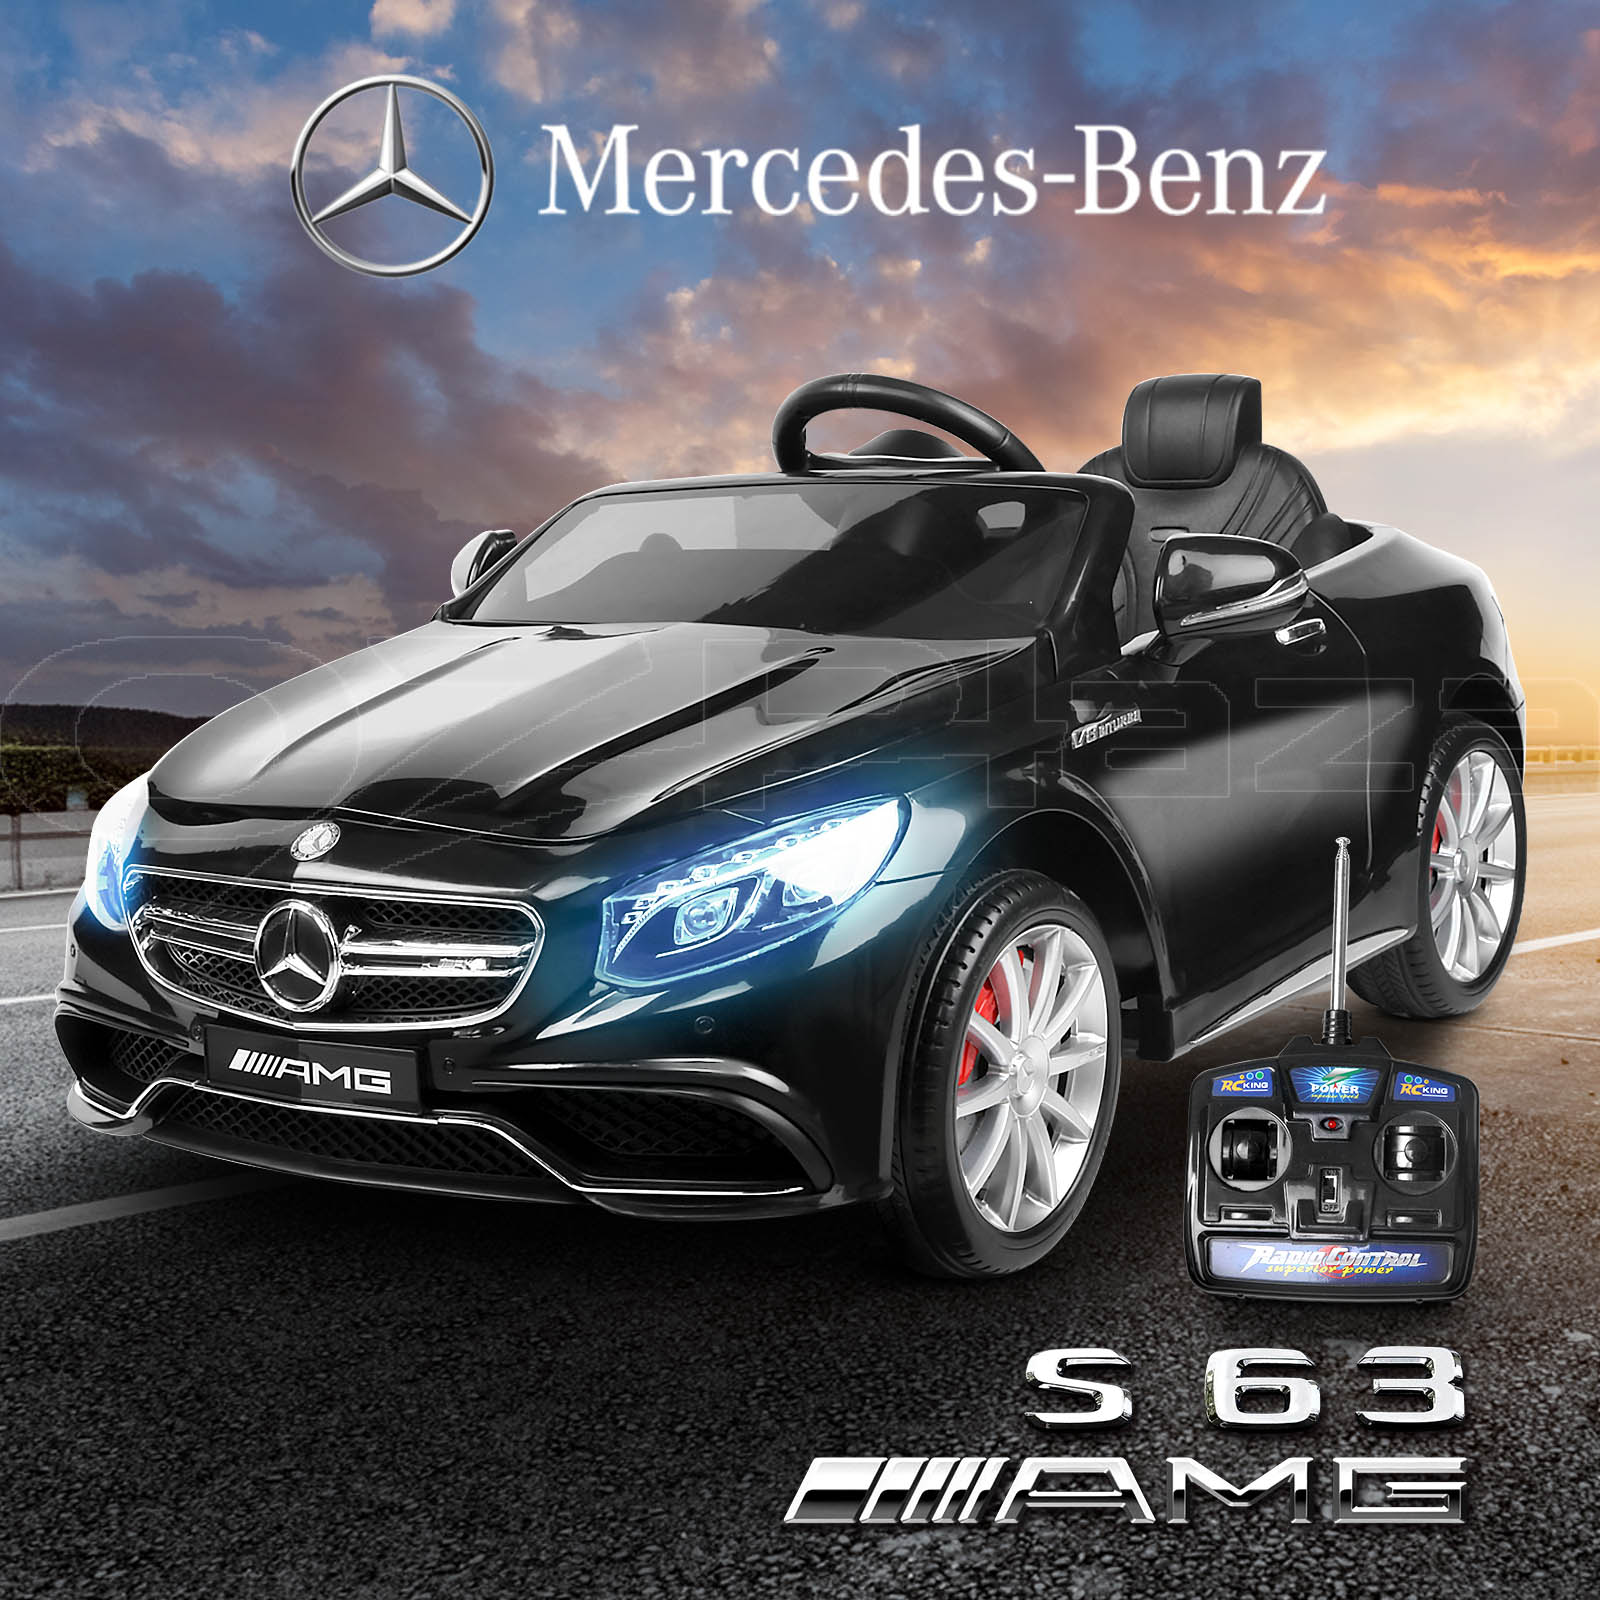 Kids electric ride on car licensed mercedes benz amg s63 for Mercedes benz kids